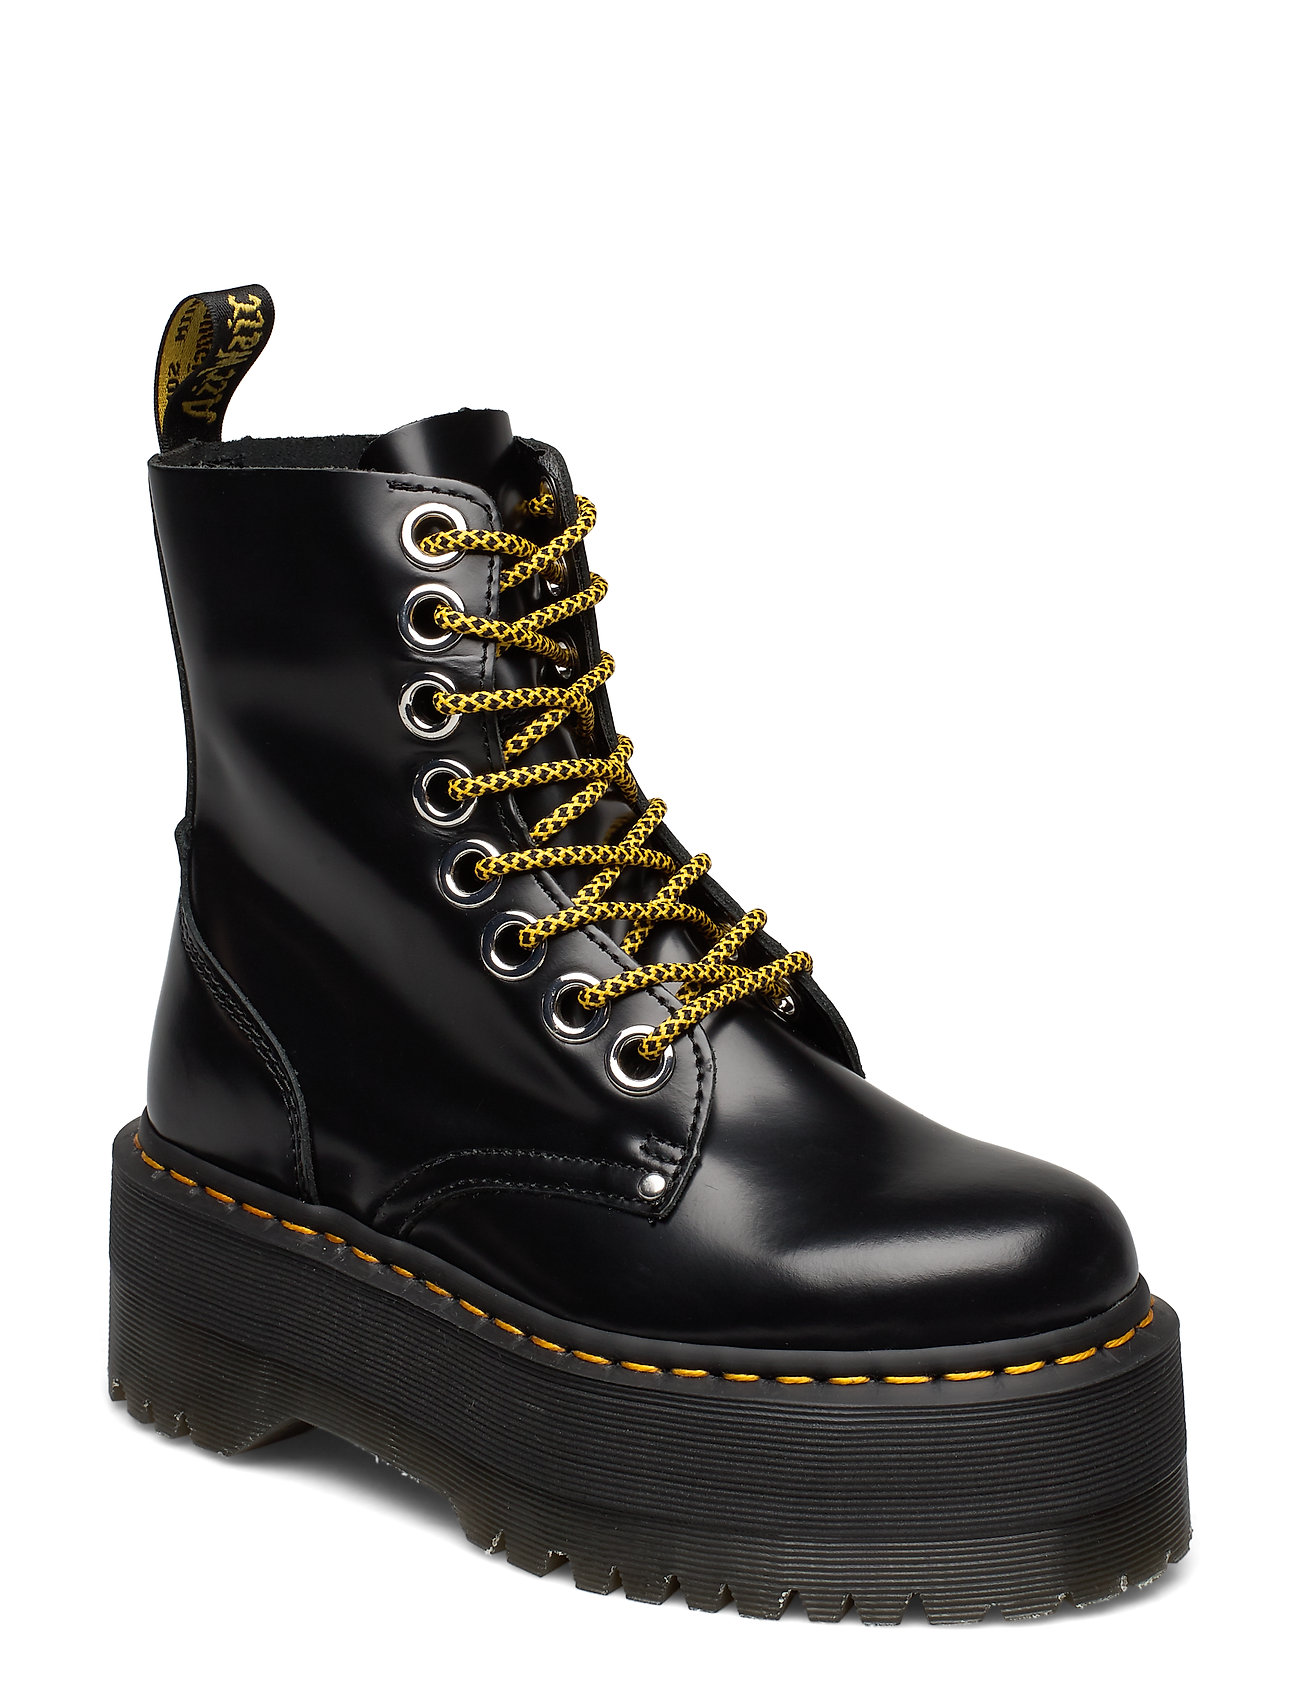 Image of Jadon Max Black Buttero Shoes Boots Ankle Boots Ankle Boot - Flat Sort Dr. Martens (3461976751)